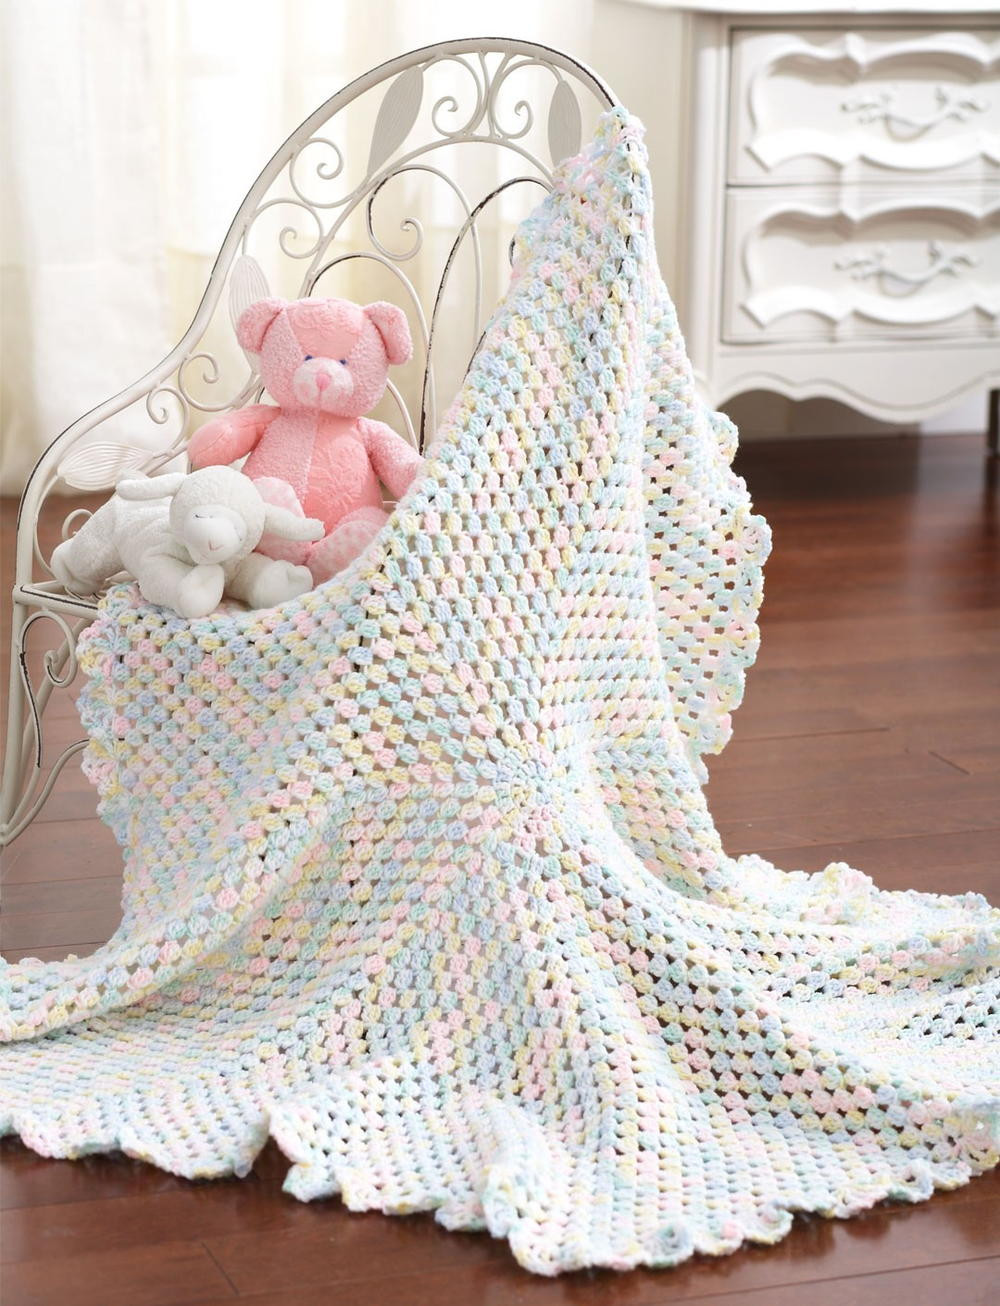 Bernat Crochet Blanket Awesome Marshmallow Baby Blanket Of Incredible 49 Images Bernat Crochet Blanket